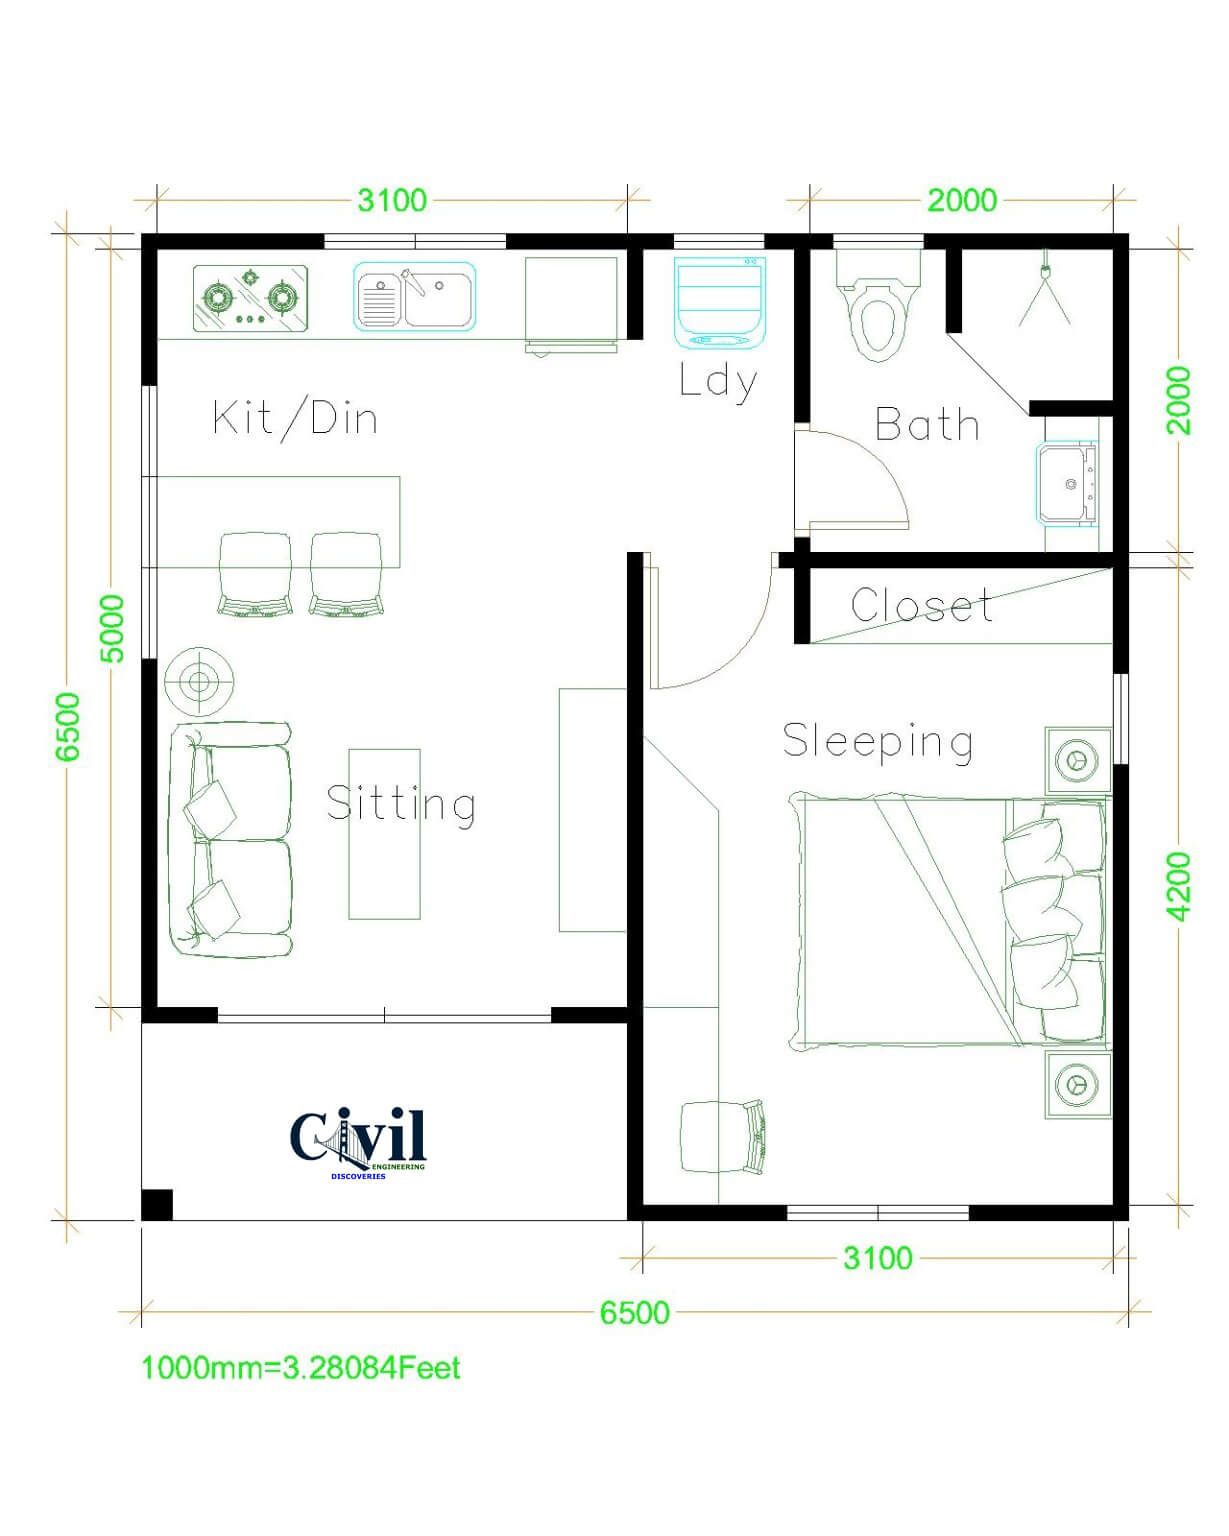 Beautiful Tiny House Plan Ideas For Your Inspiration Engineering Discoveries In 2021 One Bedroom House Small House Plans Small House Layout